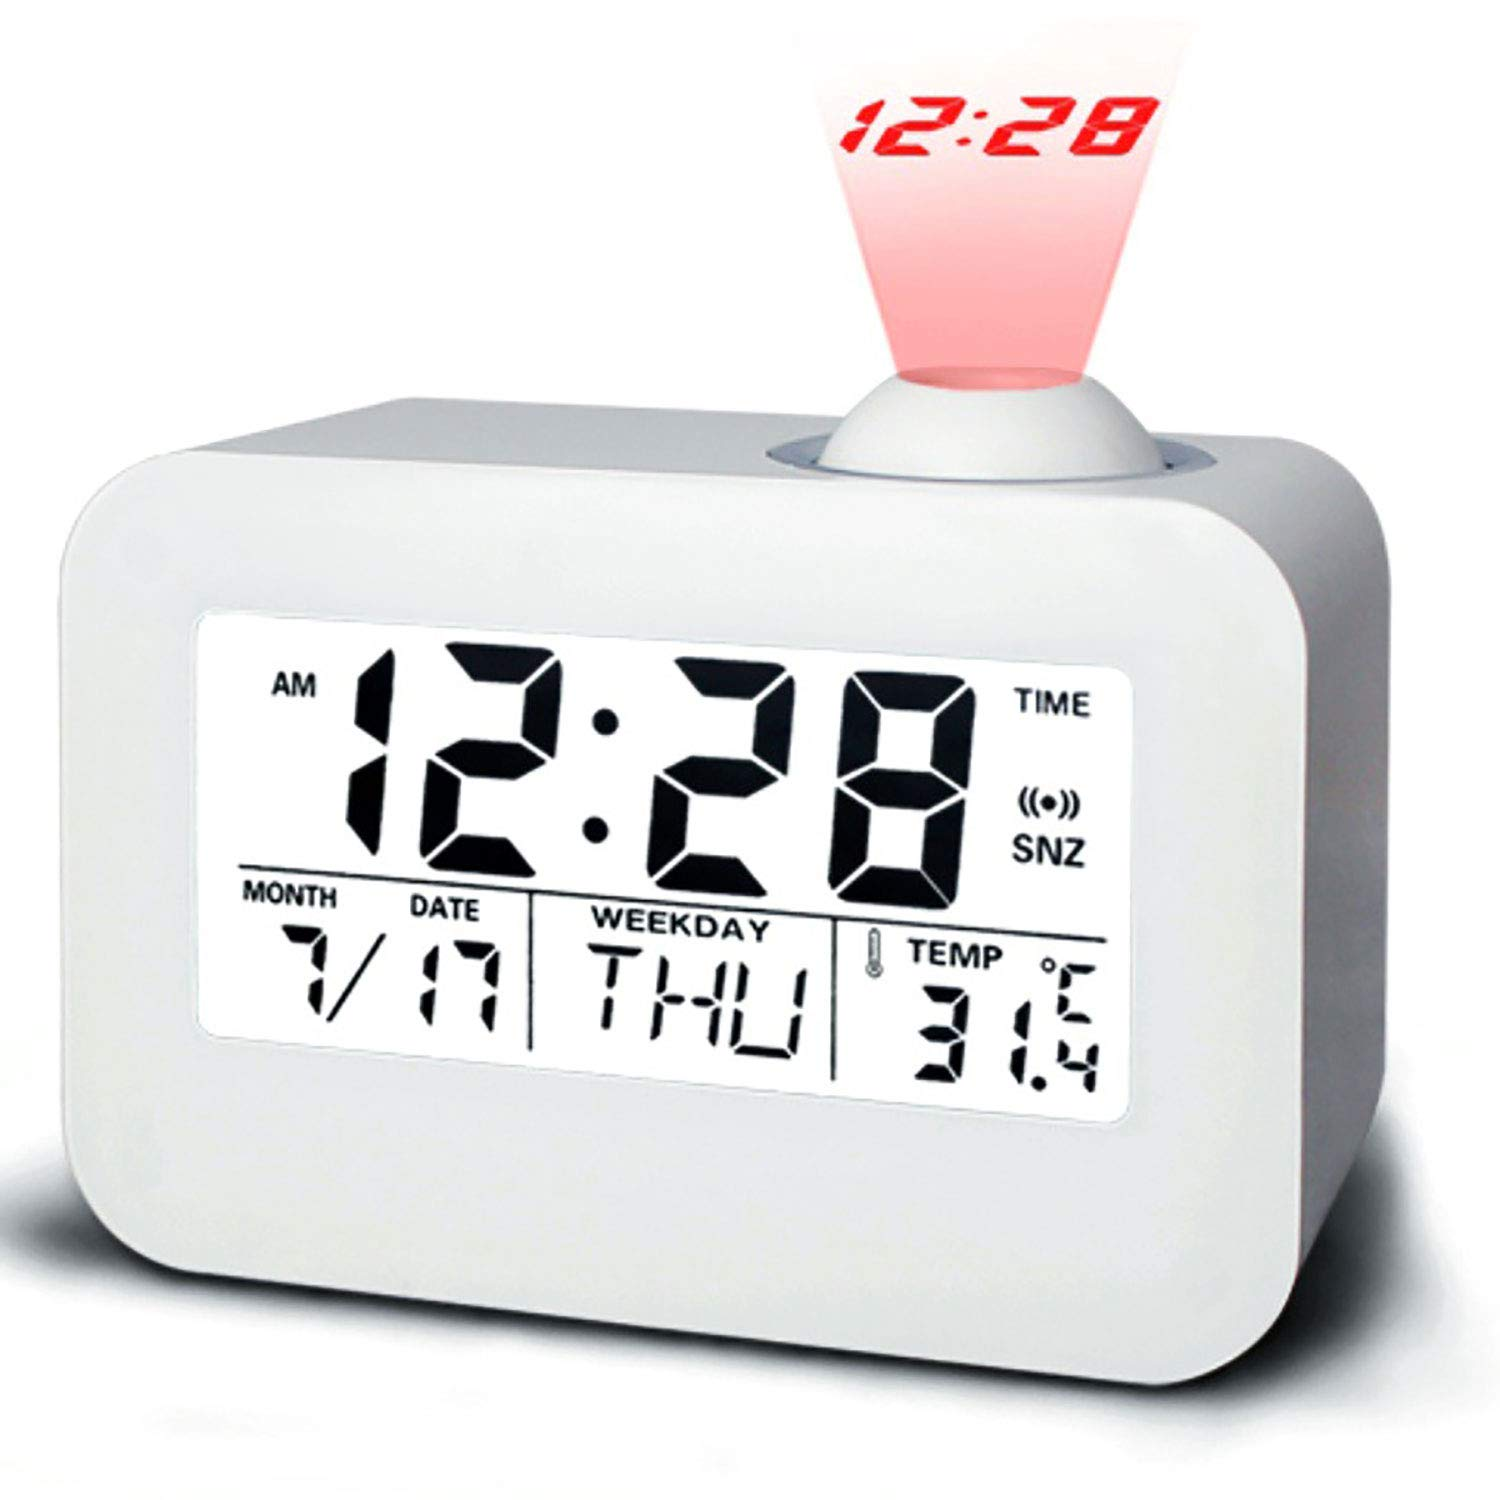 SUPPINNER Projection Alarm Clock, LED Display Digital Wall Celling Time Projector Clocks for Bedroom, with Date/Temperature/ Snooze/Hourly Chime/Sensor Alarm Clock for Travel Home Desk (White)